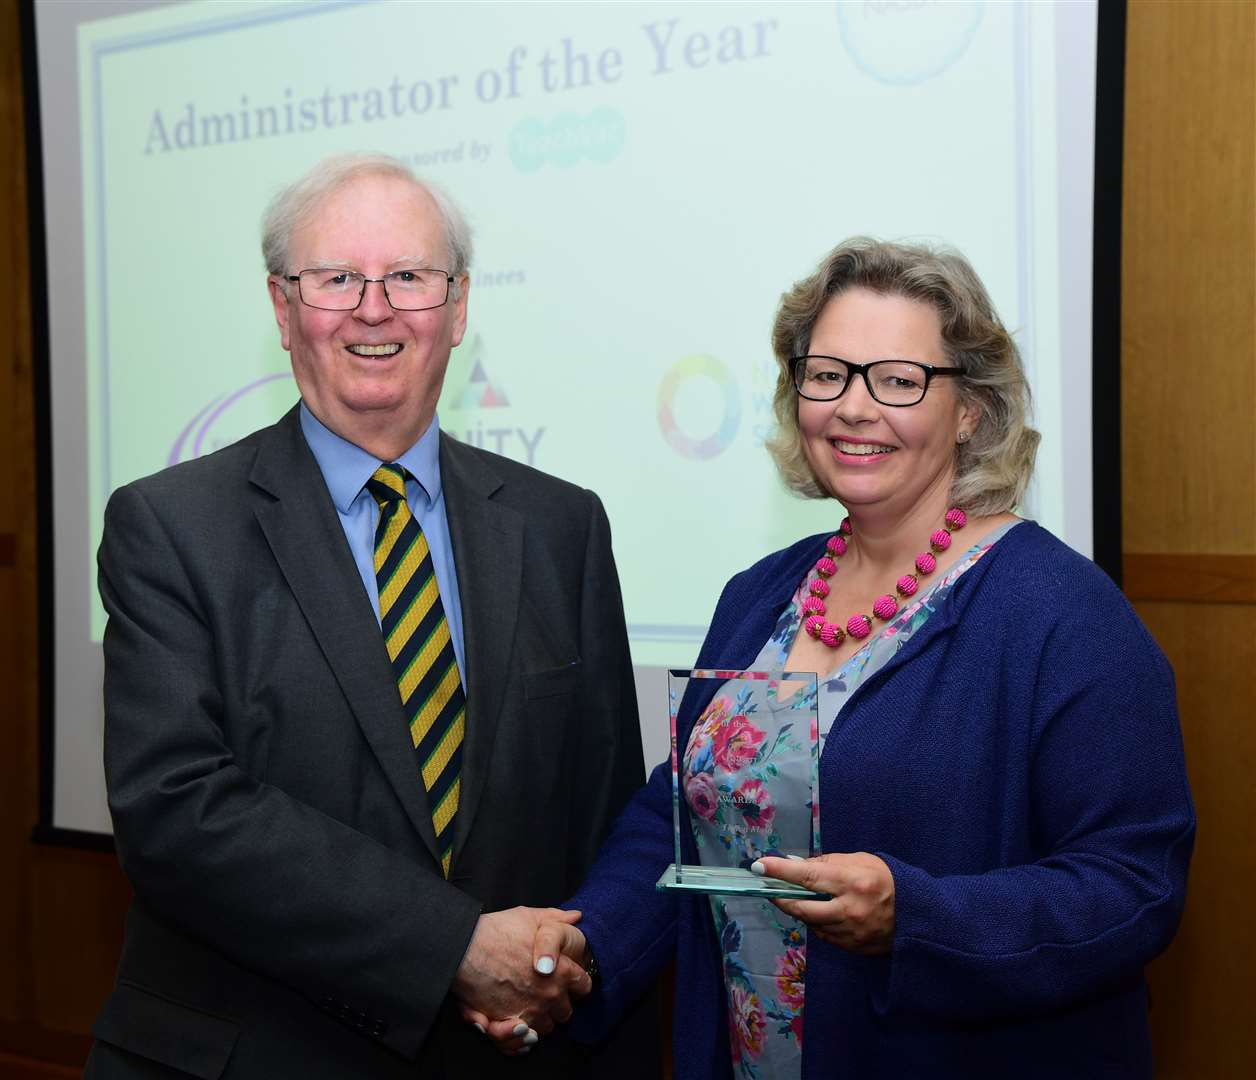 Helen Main receives her award from John Howson, of sponsor TeachVac